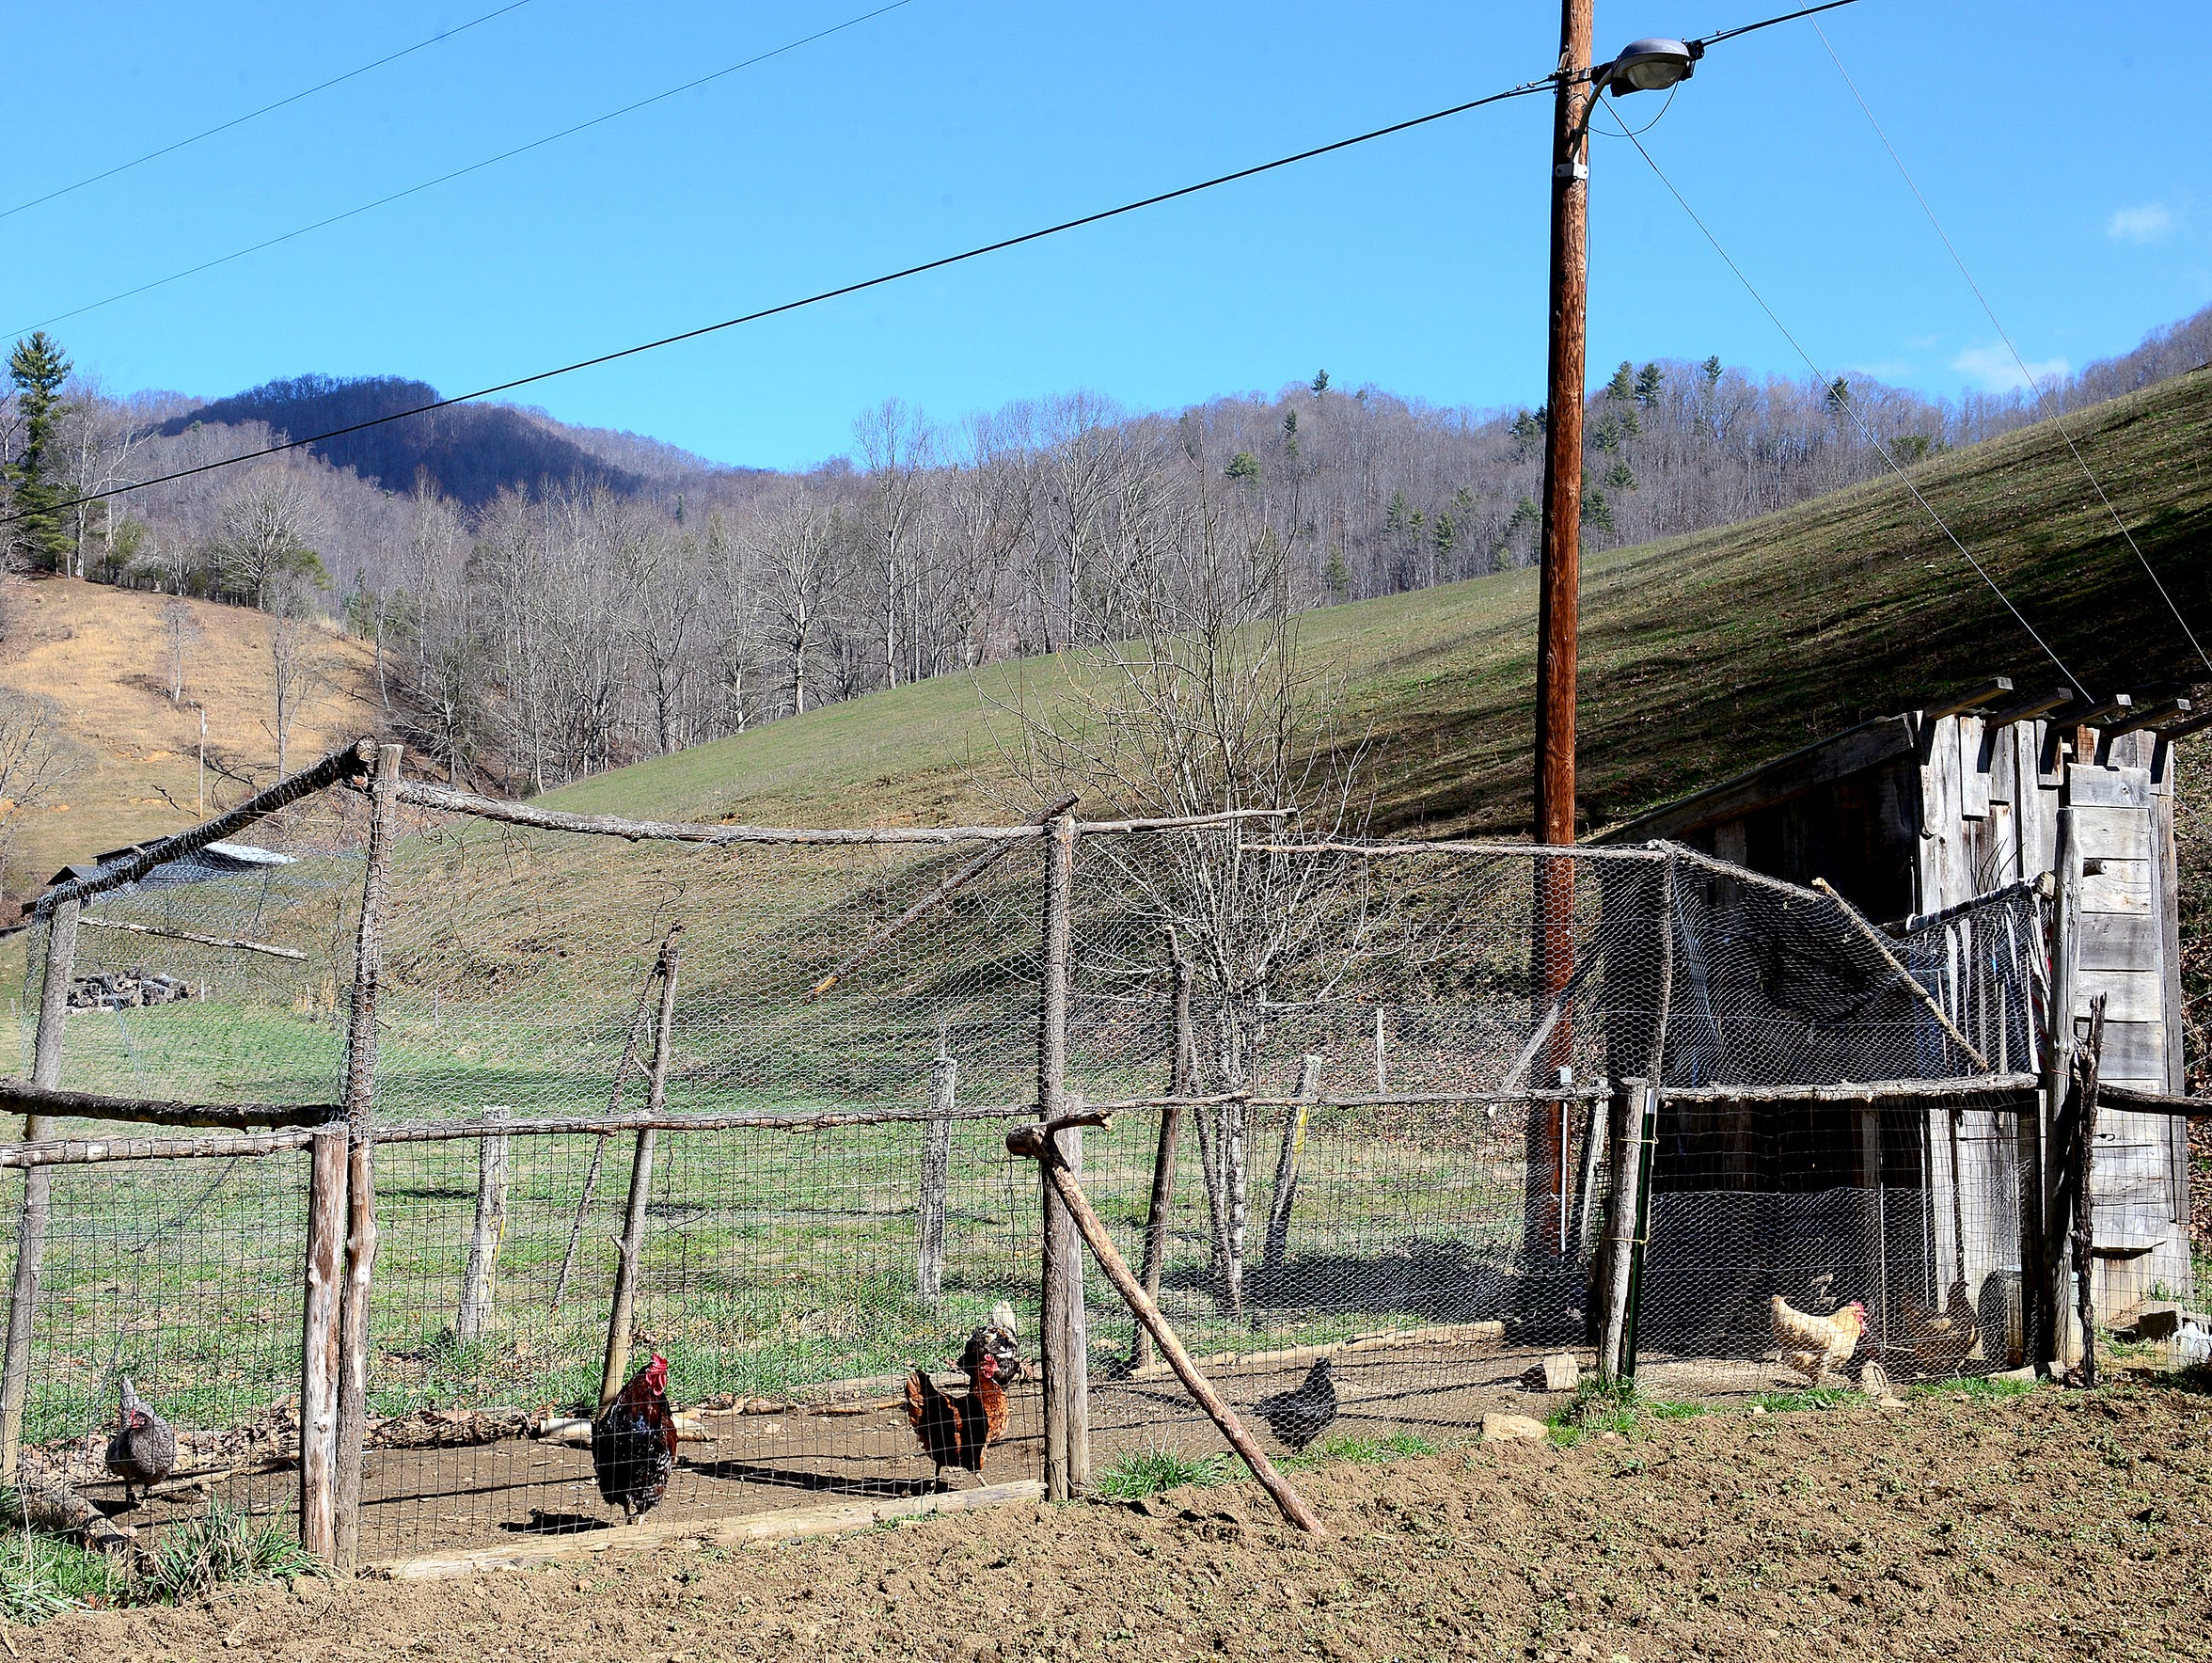 David Cooke has a chicken coop on his property in rural